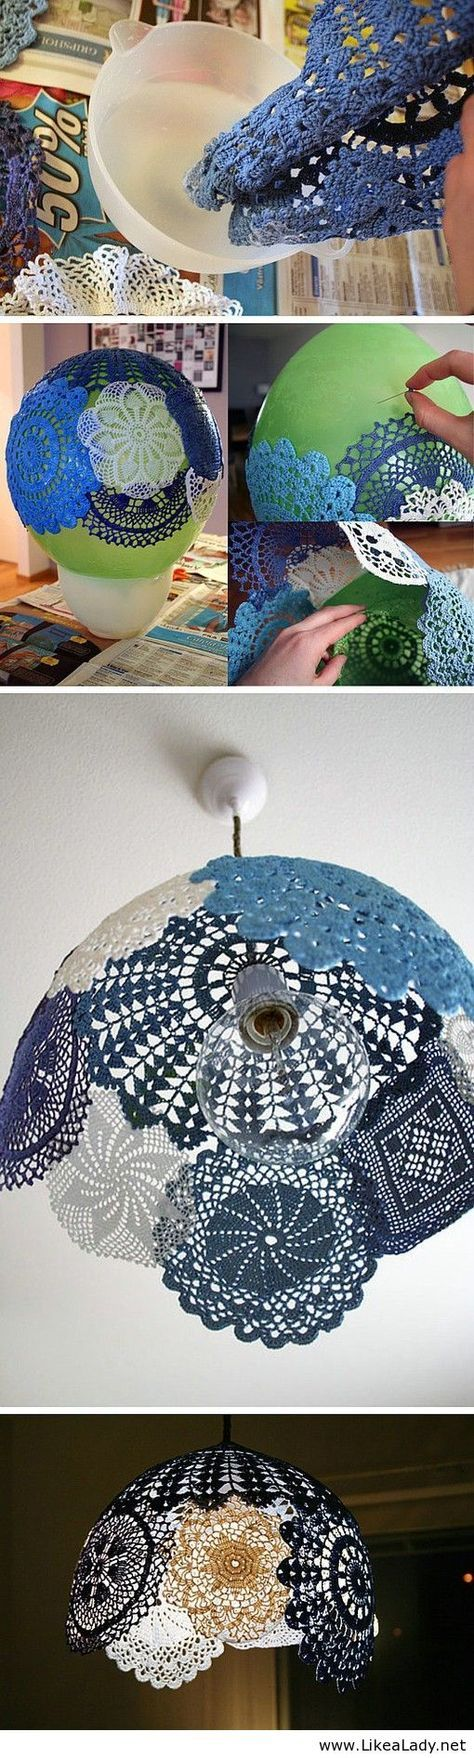 DIY doilie light shade. This is so pretty. It'd be really great in a country home.